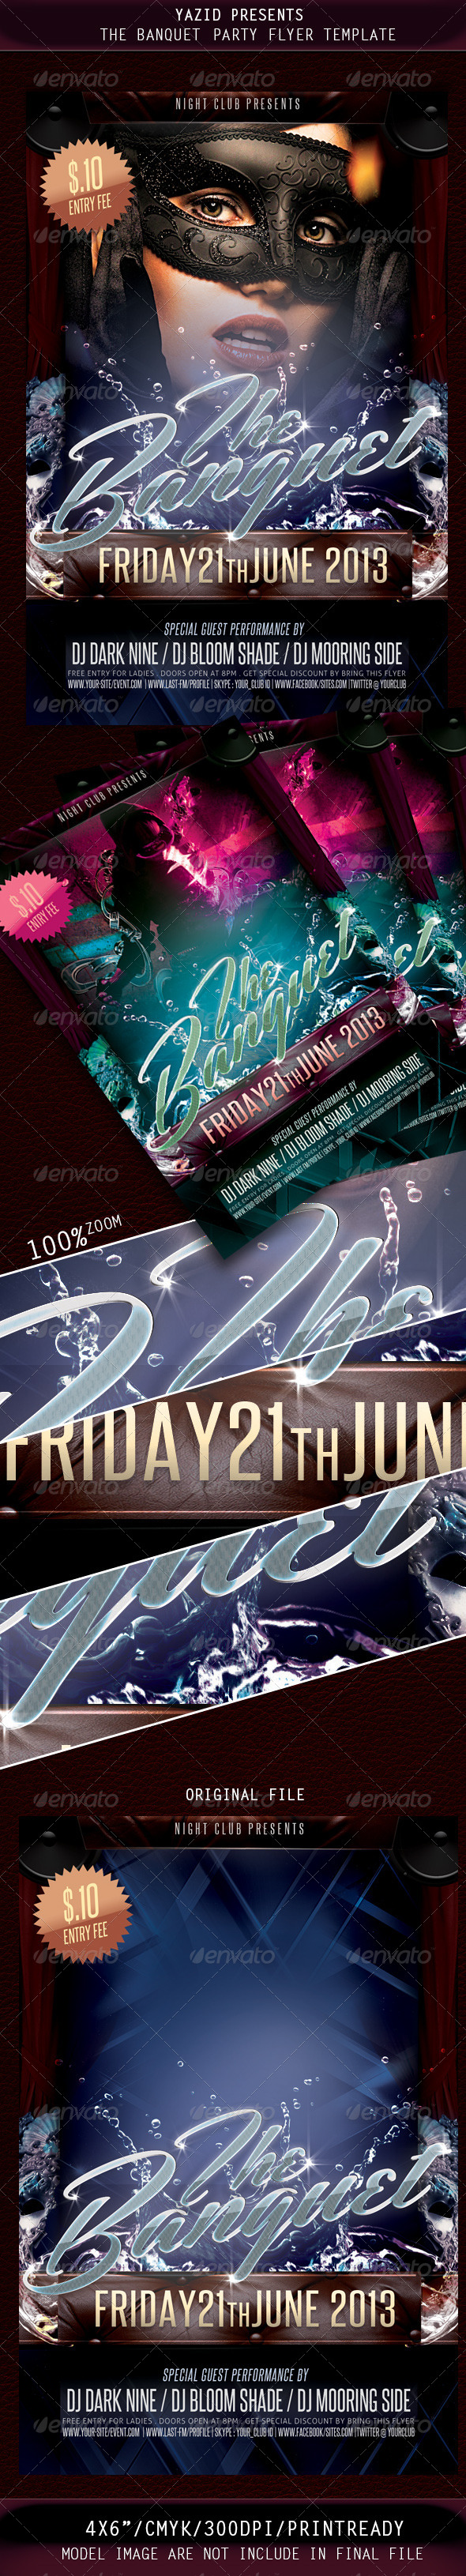 The Banquet Party Flyer Template - Clubs & Parties Events